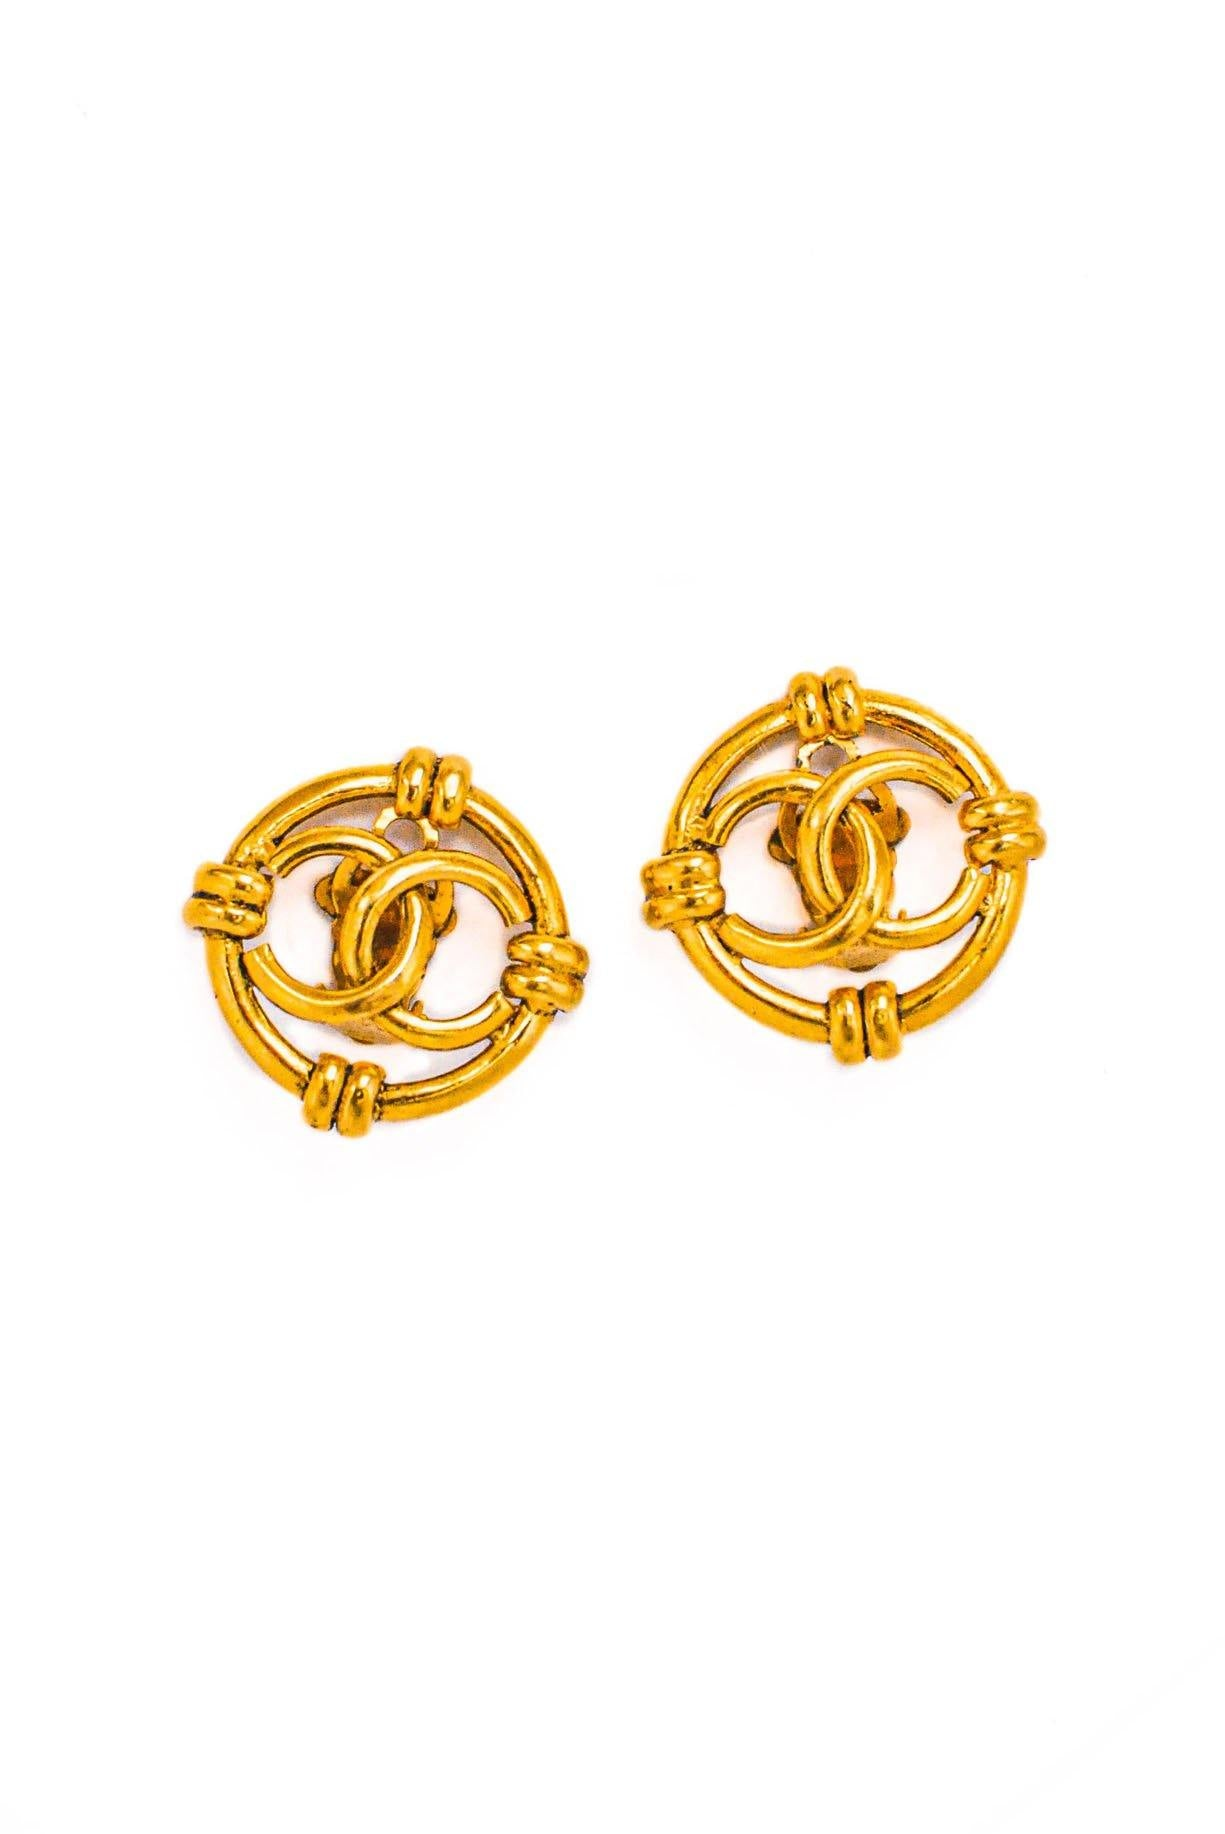 Vintage Chanel CC Cutout Clip-on Earrings from Sweet and Spark